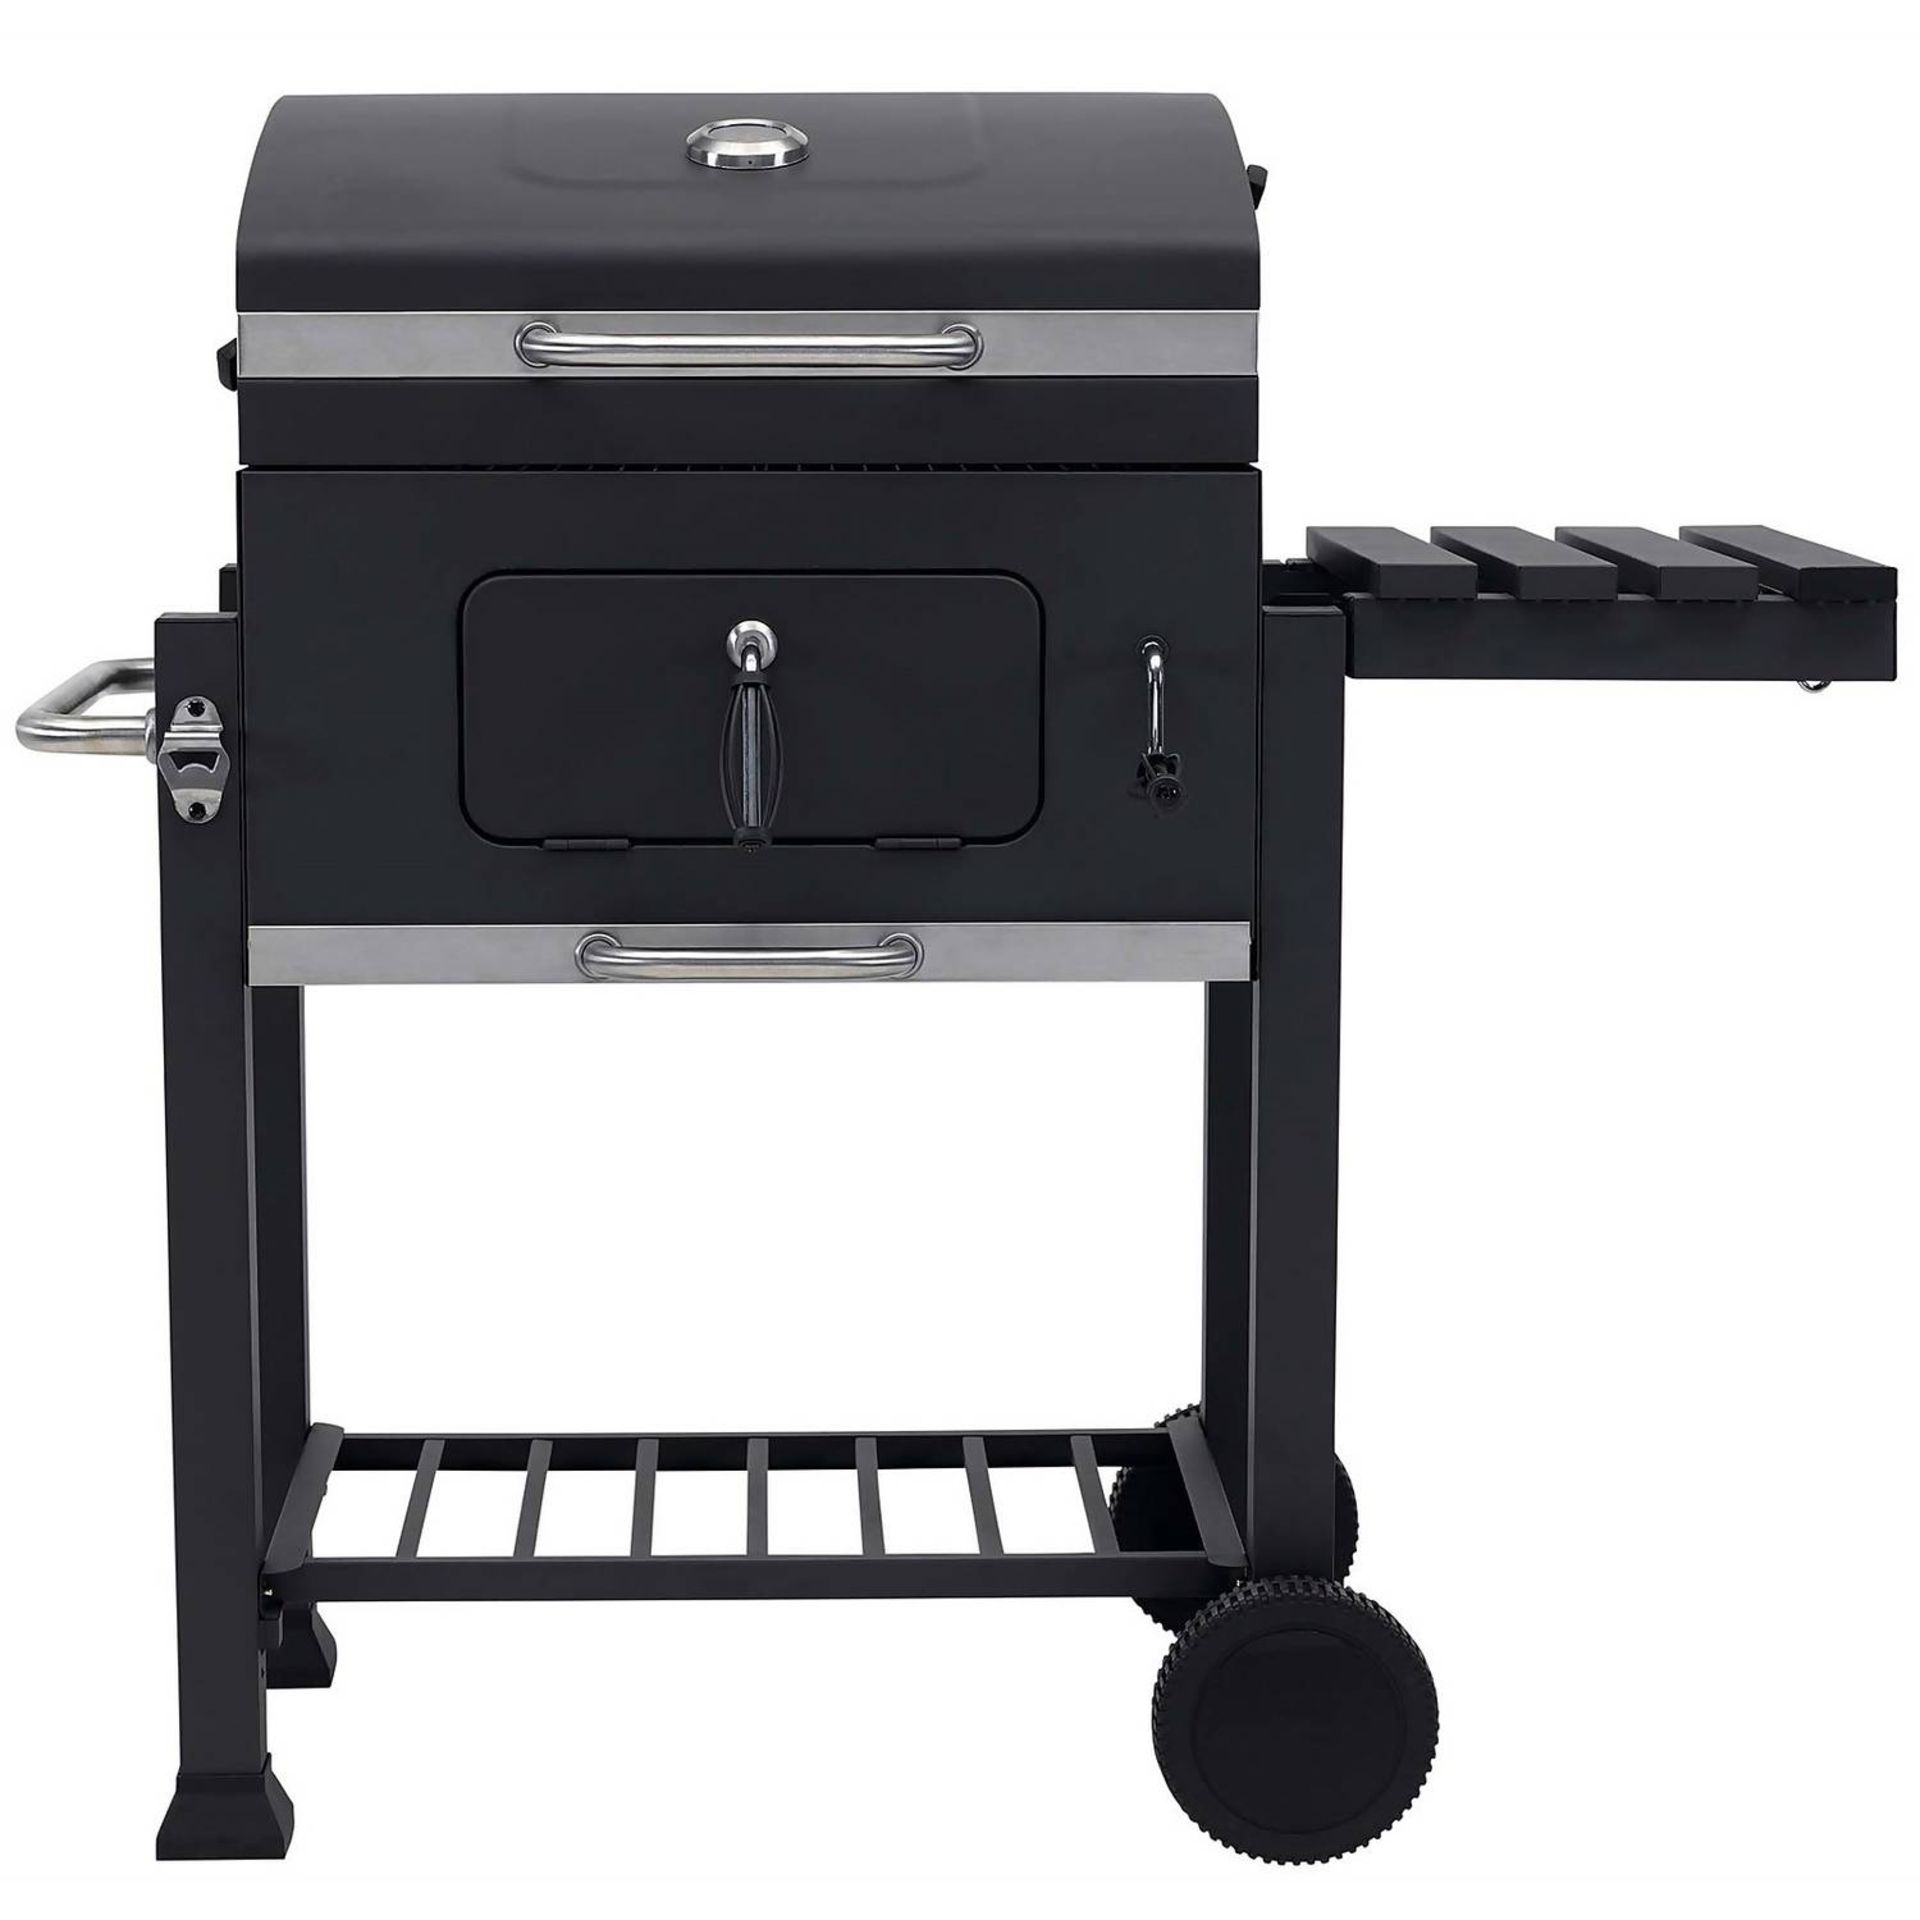 (P10) 1x Texas Franklin Charcoal BBQ. RRP £180.00. Unit Appears Unused, As New, Contents Have Not P - Image 2 of 4